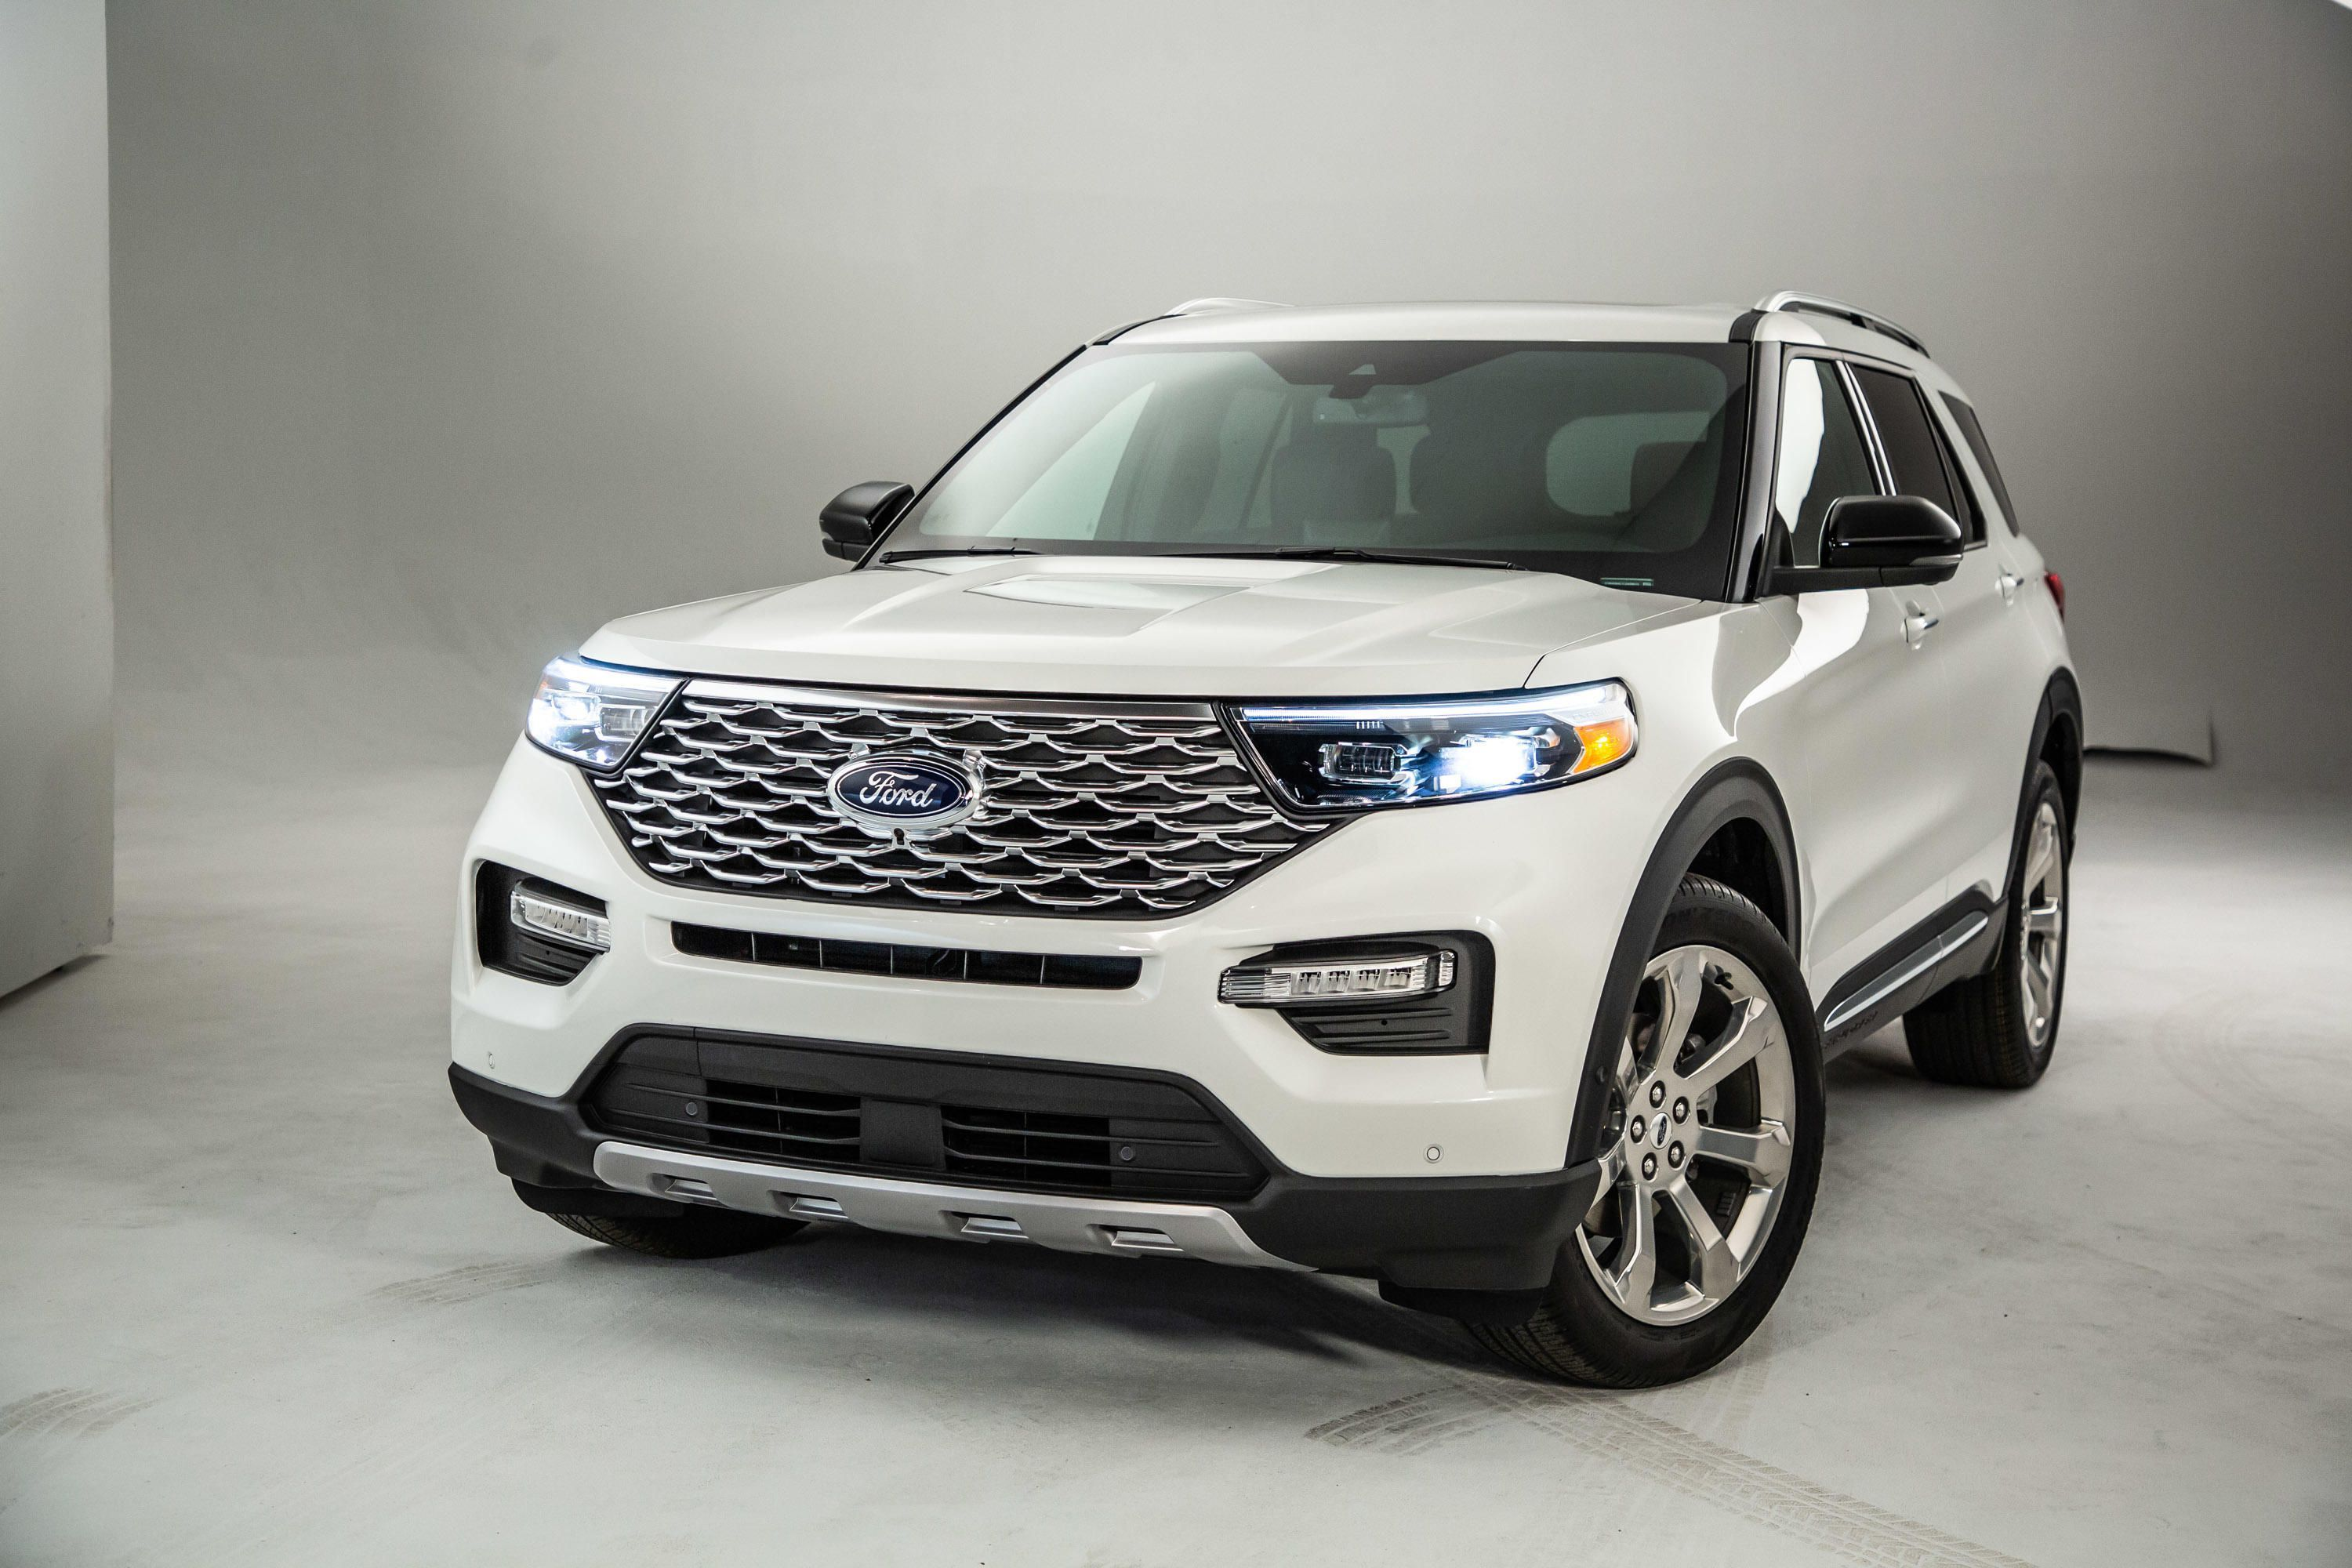 2020 Ford Explorer How It Stacks Up To The Chevy Traverse Honda Pilot Kia Sorento And Toyota Highlander 2020 Ford Explorer Ford Explorer Ford Explorer Sport